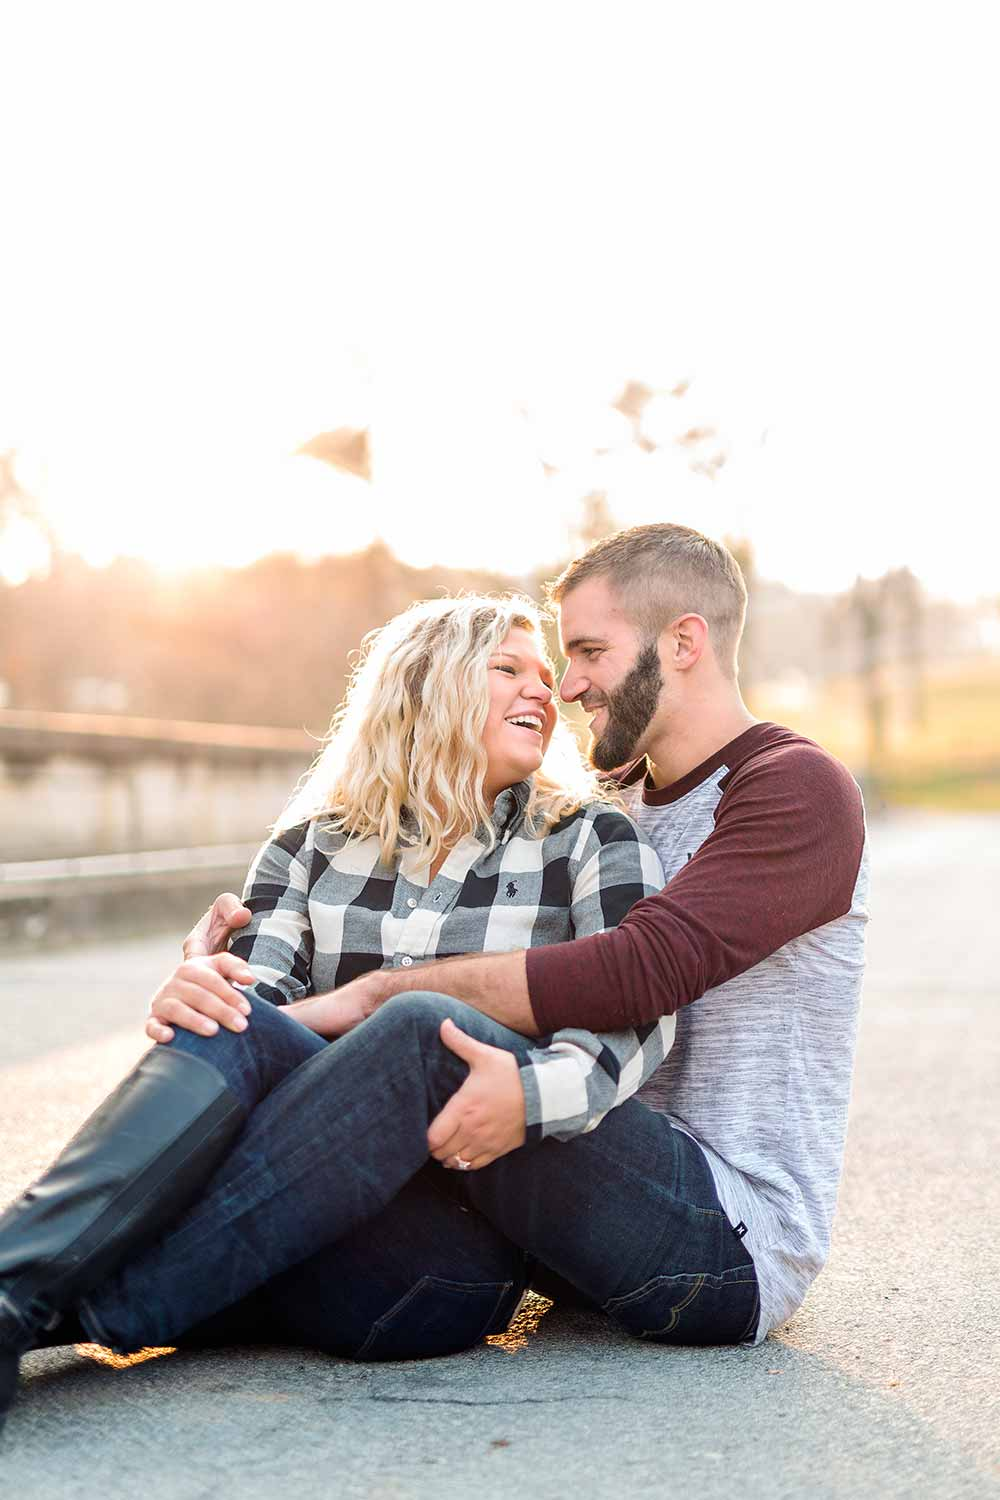 Yardley Engagement Photo with couple sitting on bridge and laughing together